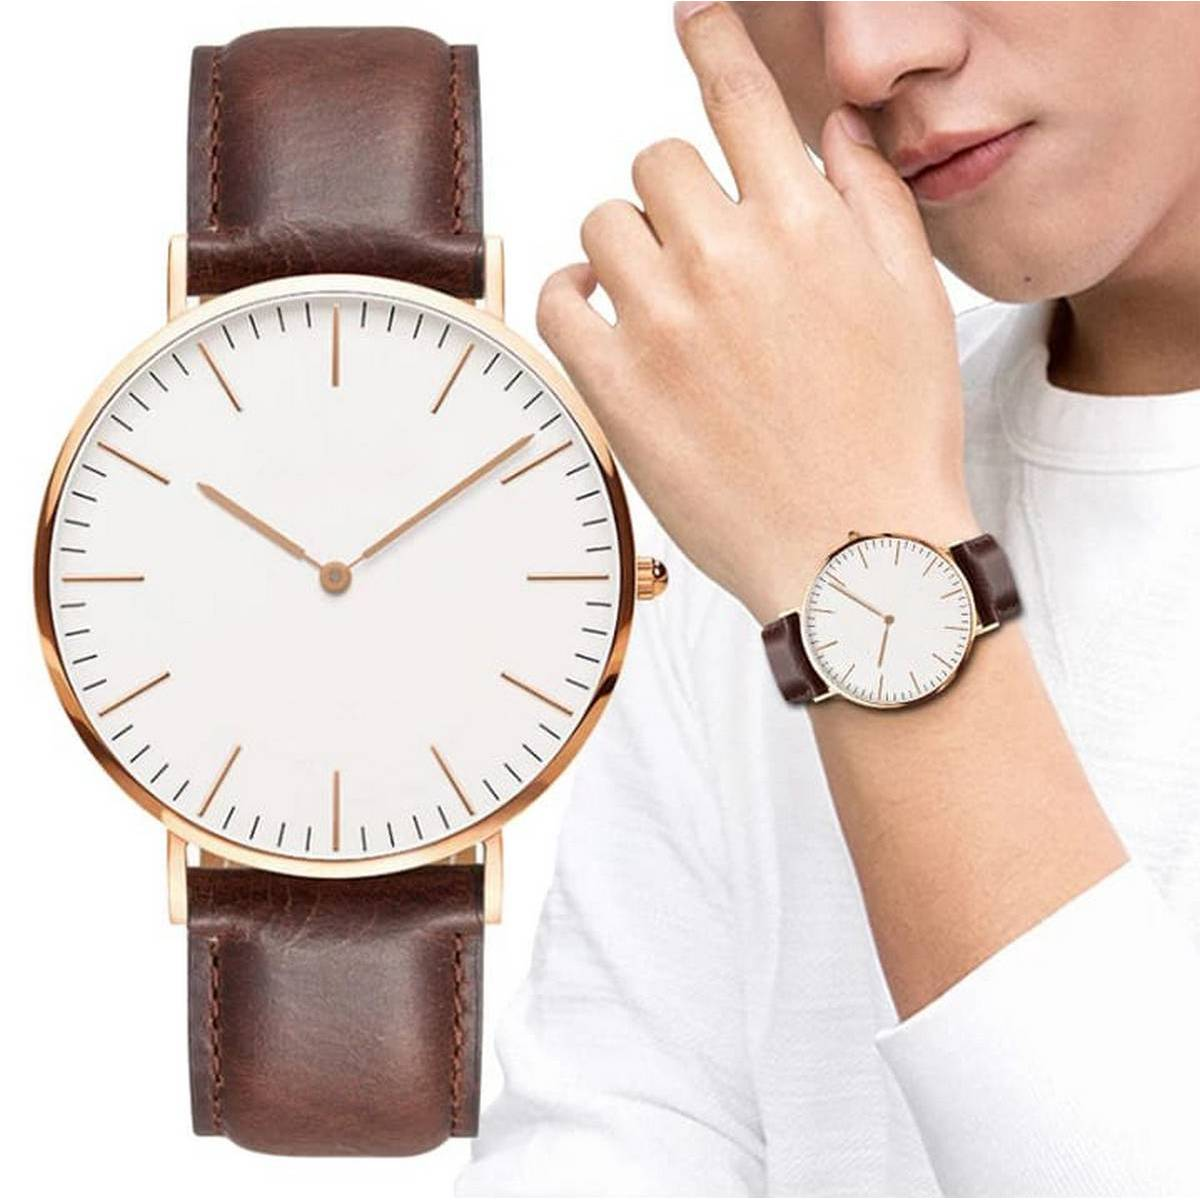 Brown Leather Watch for Men - High quality stainless steel watch for boys - Unisex Fashion Watch